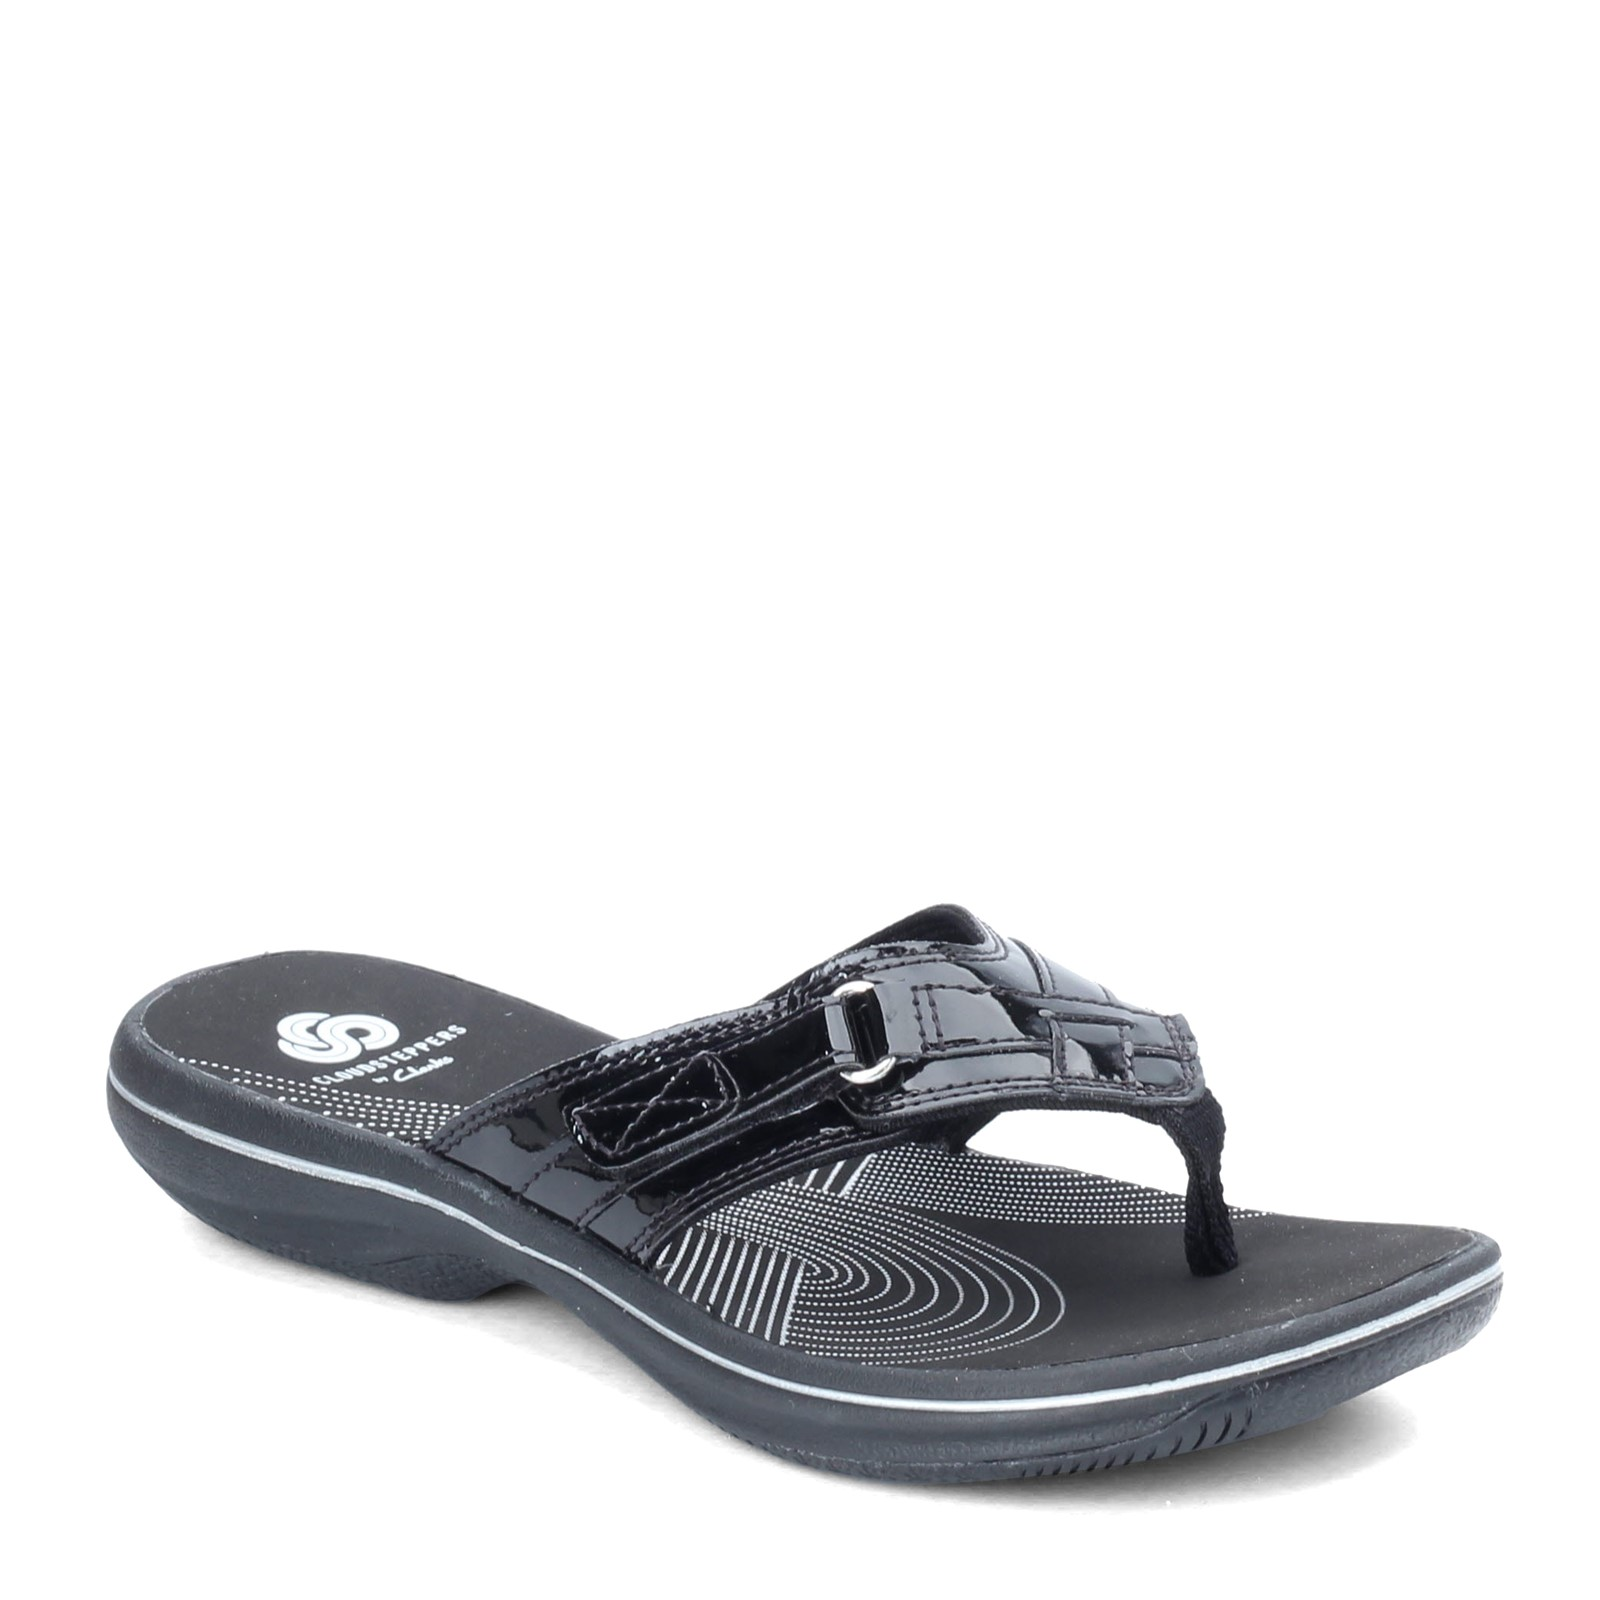 Women's Clarks, Breeze Sea Sandal